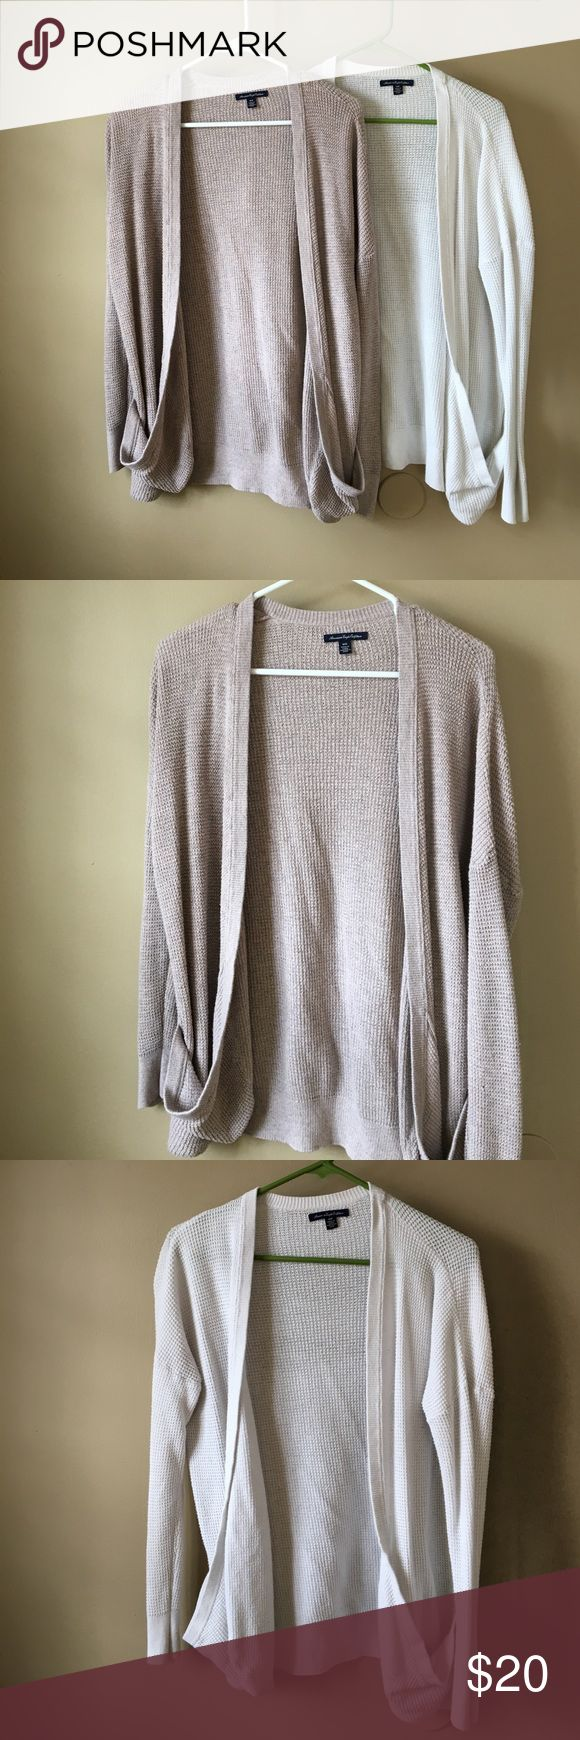 American Eagle Flowy Cardigan Great addition to any outfit! These have slight pilling, price reflects the use. White is the only one available American Eagle Outfitters Sweaters Cardigans